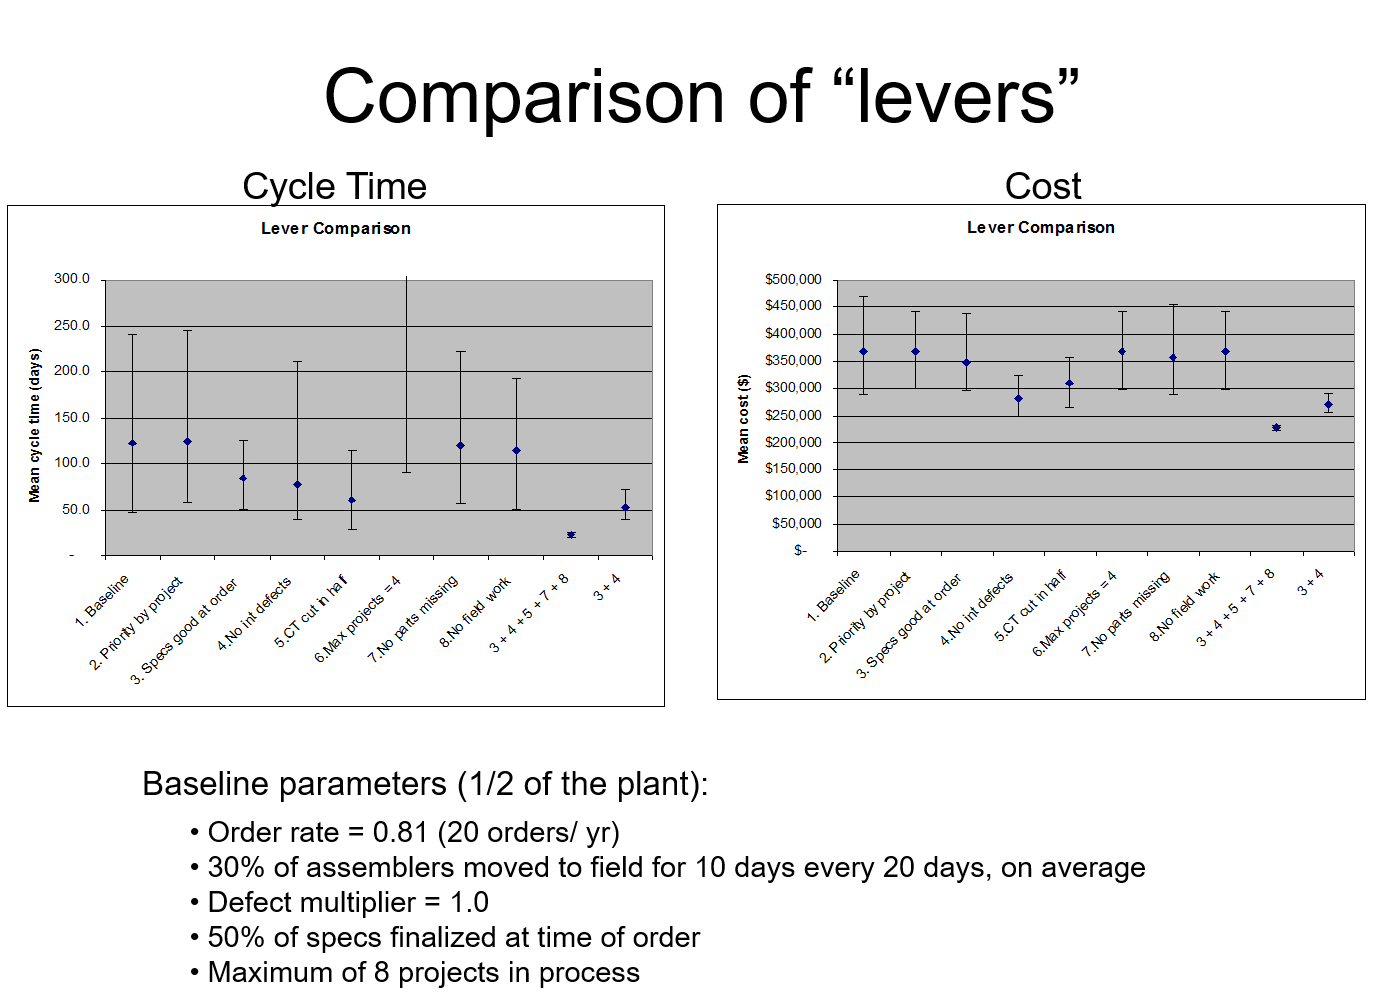 Summary of modeling results comparing strategies